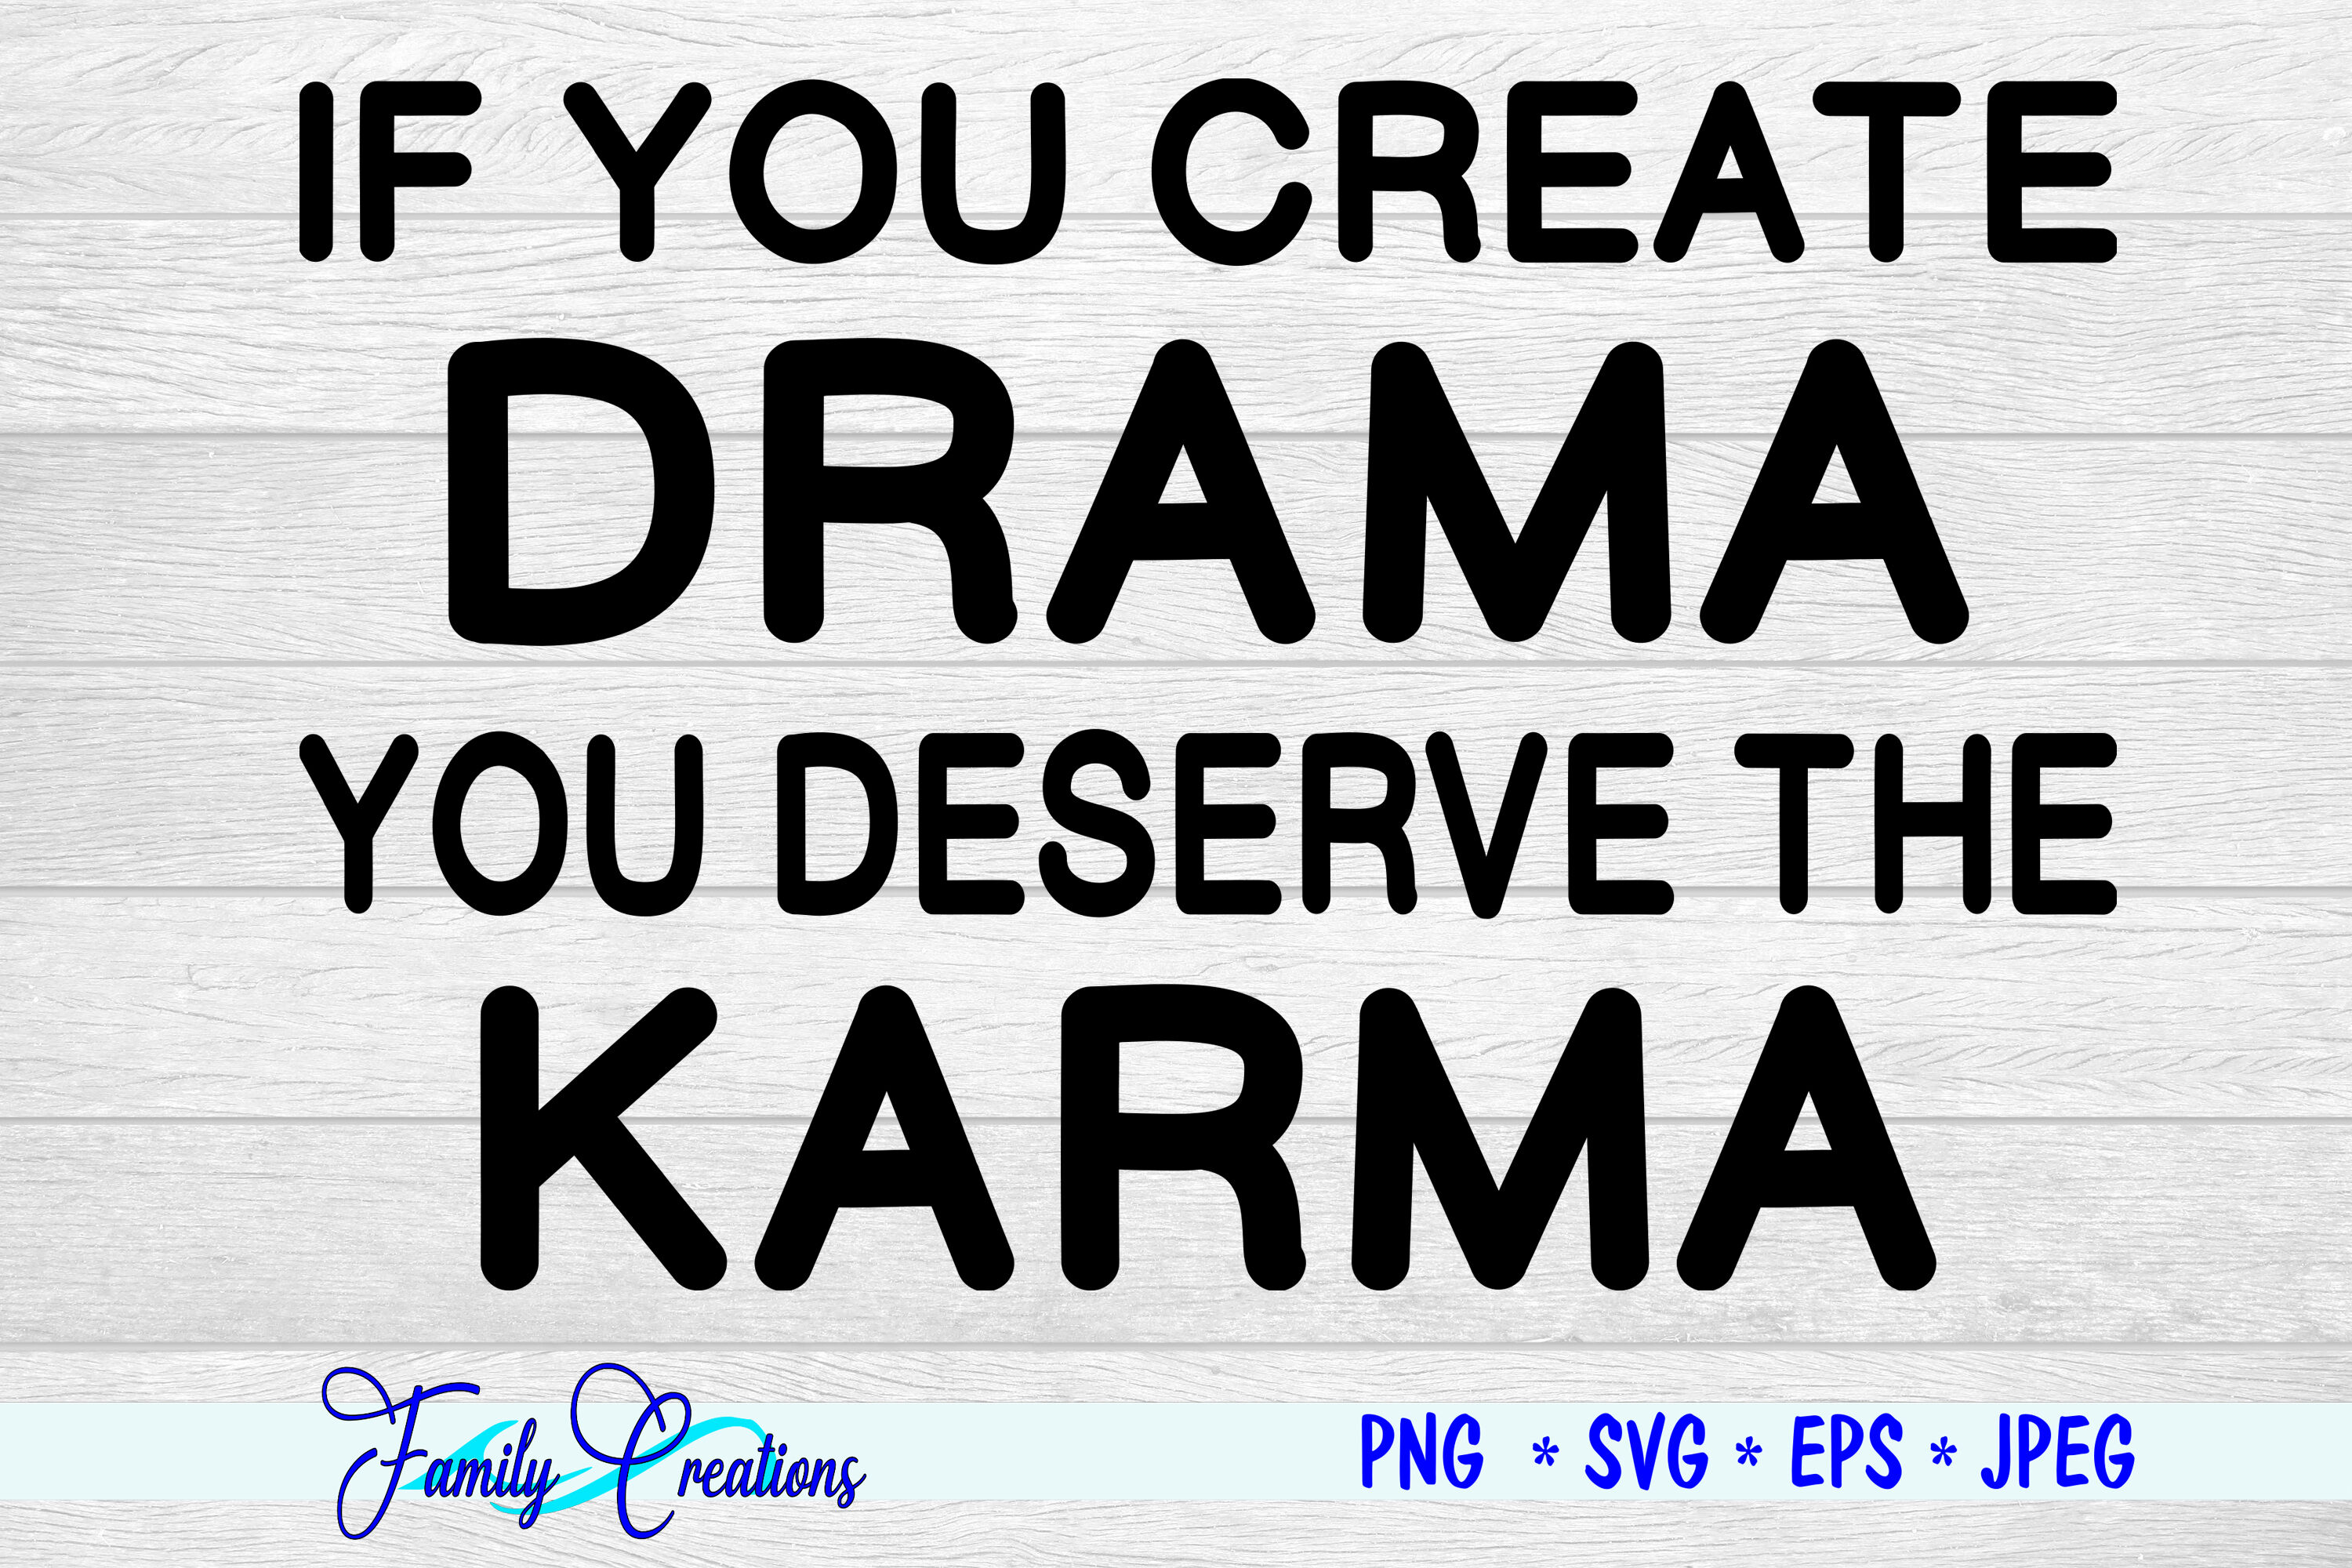 If You Create Drama You Deserve The Karma By Family Creations